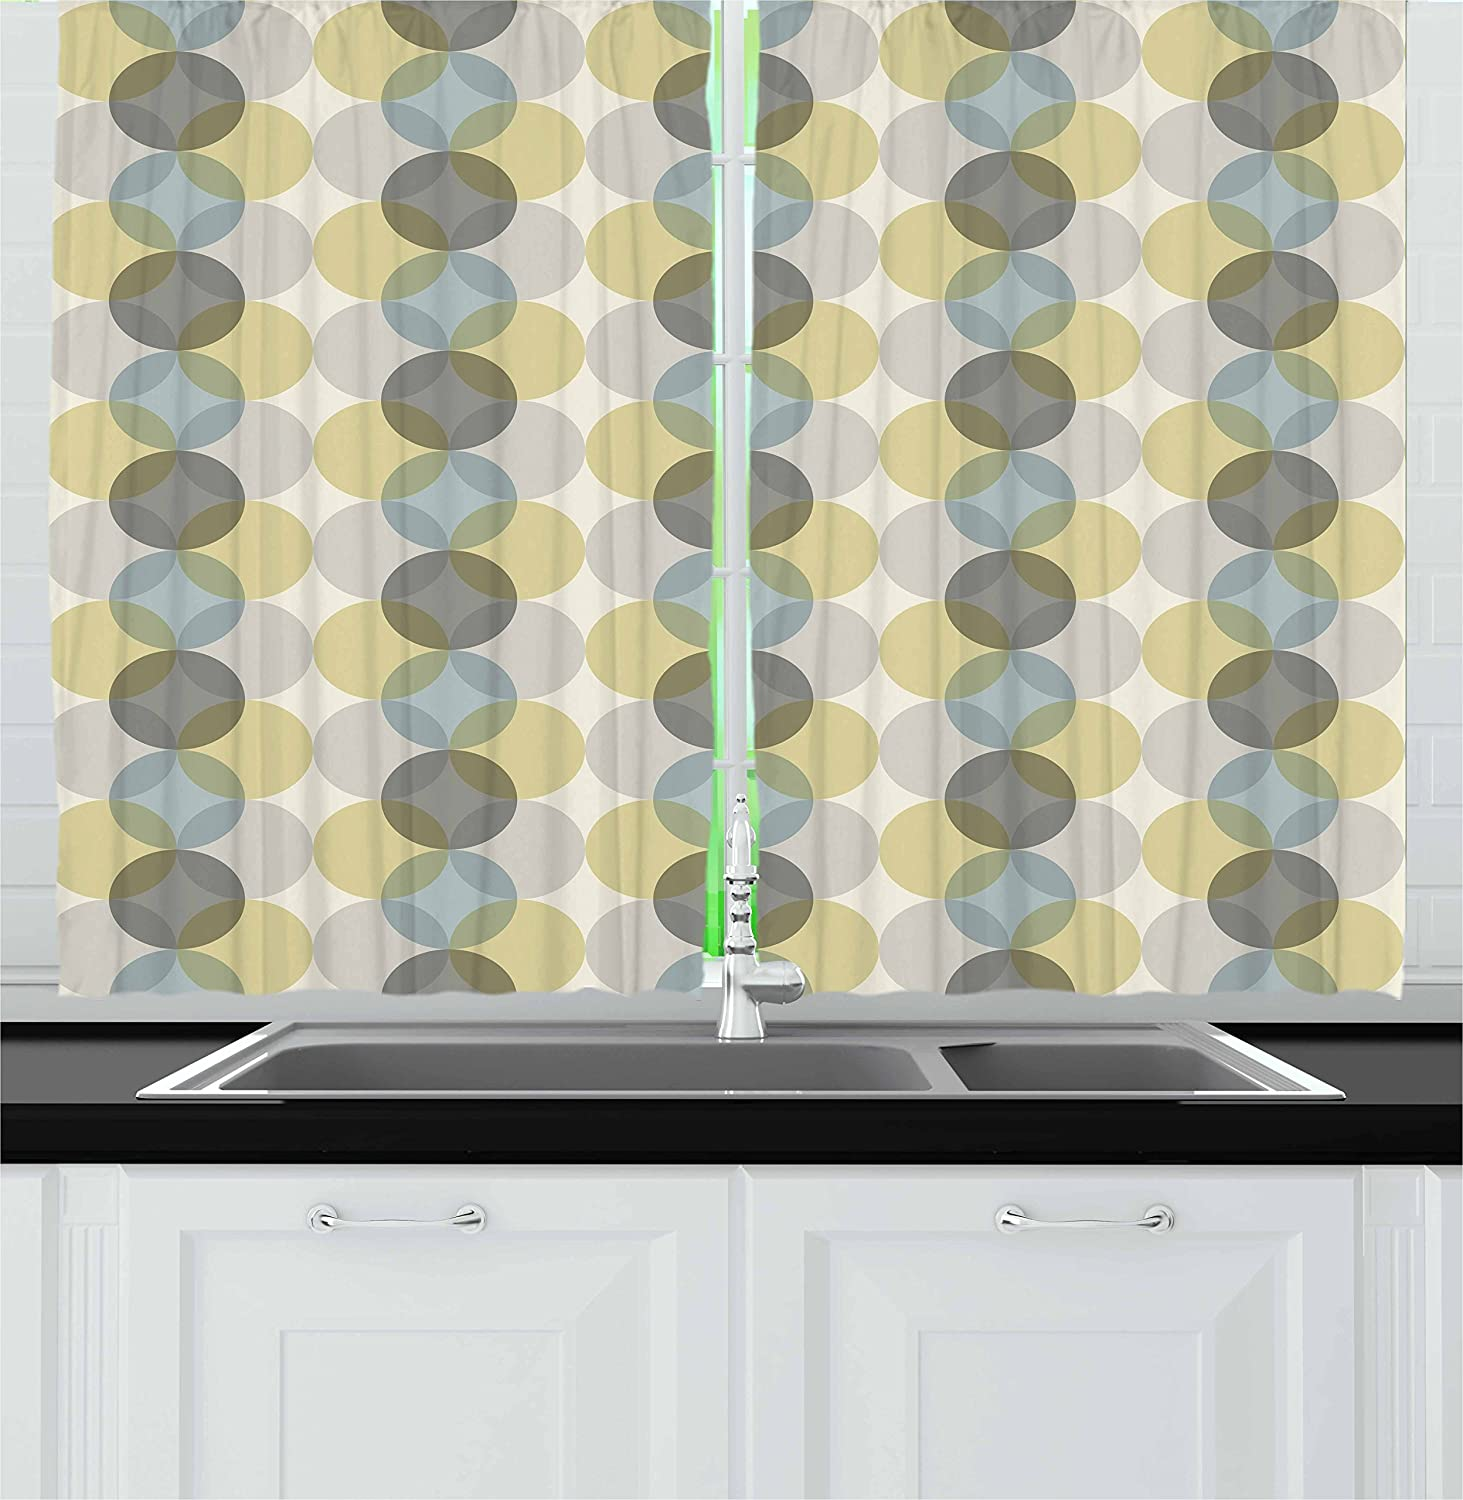 Lunarable Circle Kitchen Curtains, Flower of Life Design Vintage Fifties Midcentury Atomic Art Movement Inspired, Window Drapes 2 Panel Set for Kitchen Cafe, 55 W X 39 L Inches, Grey Sephia Beige